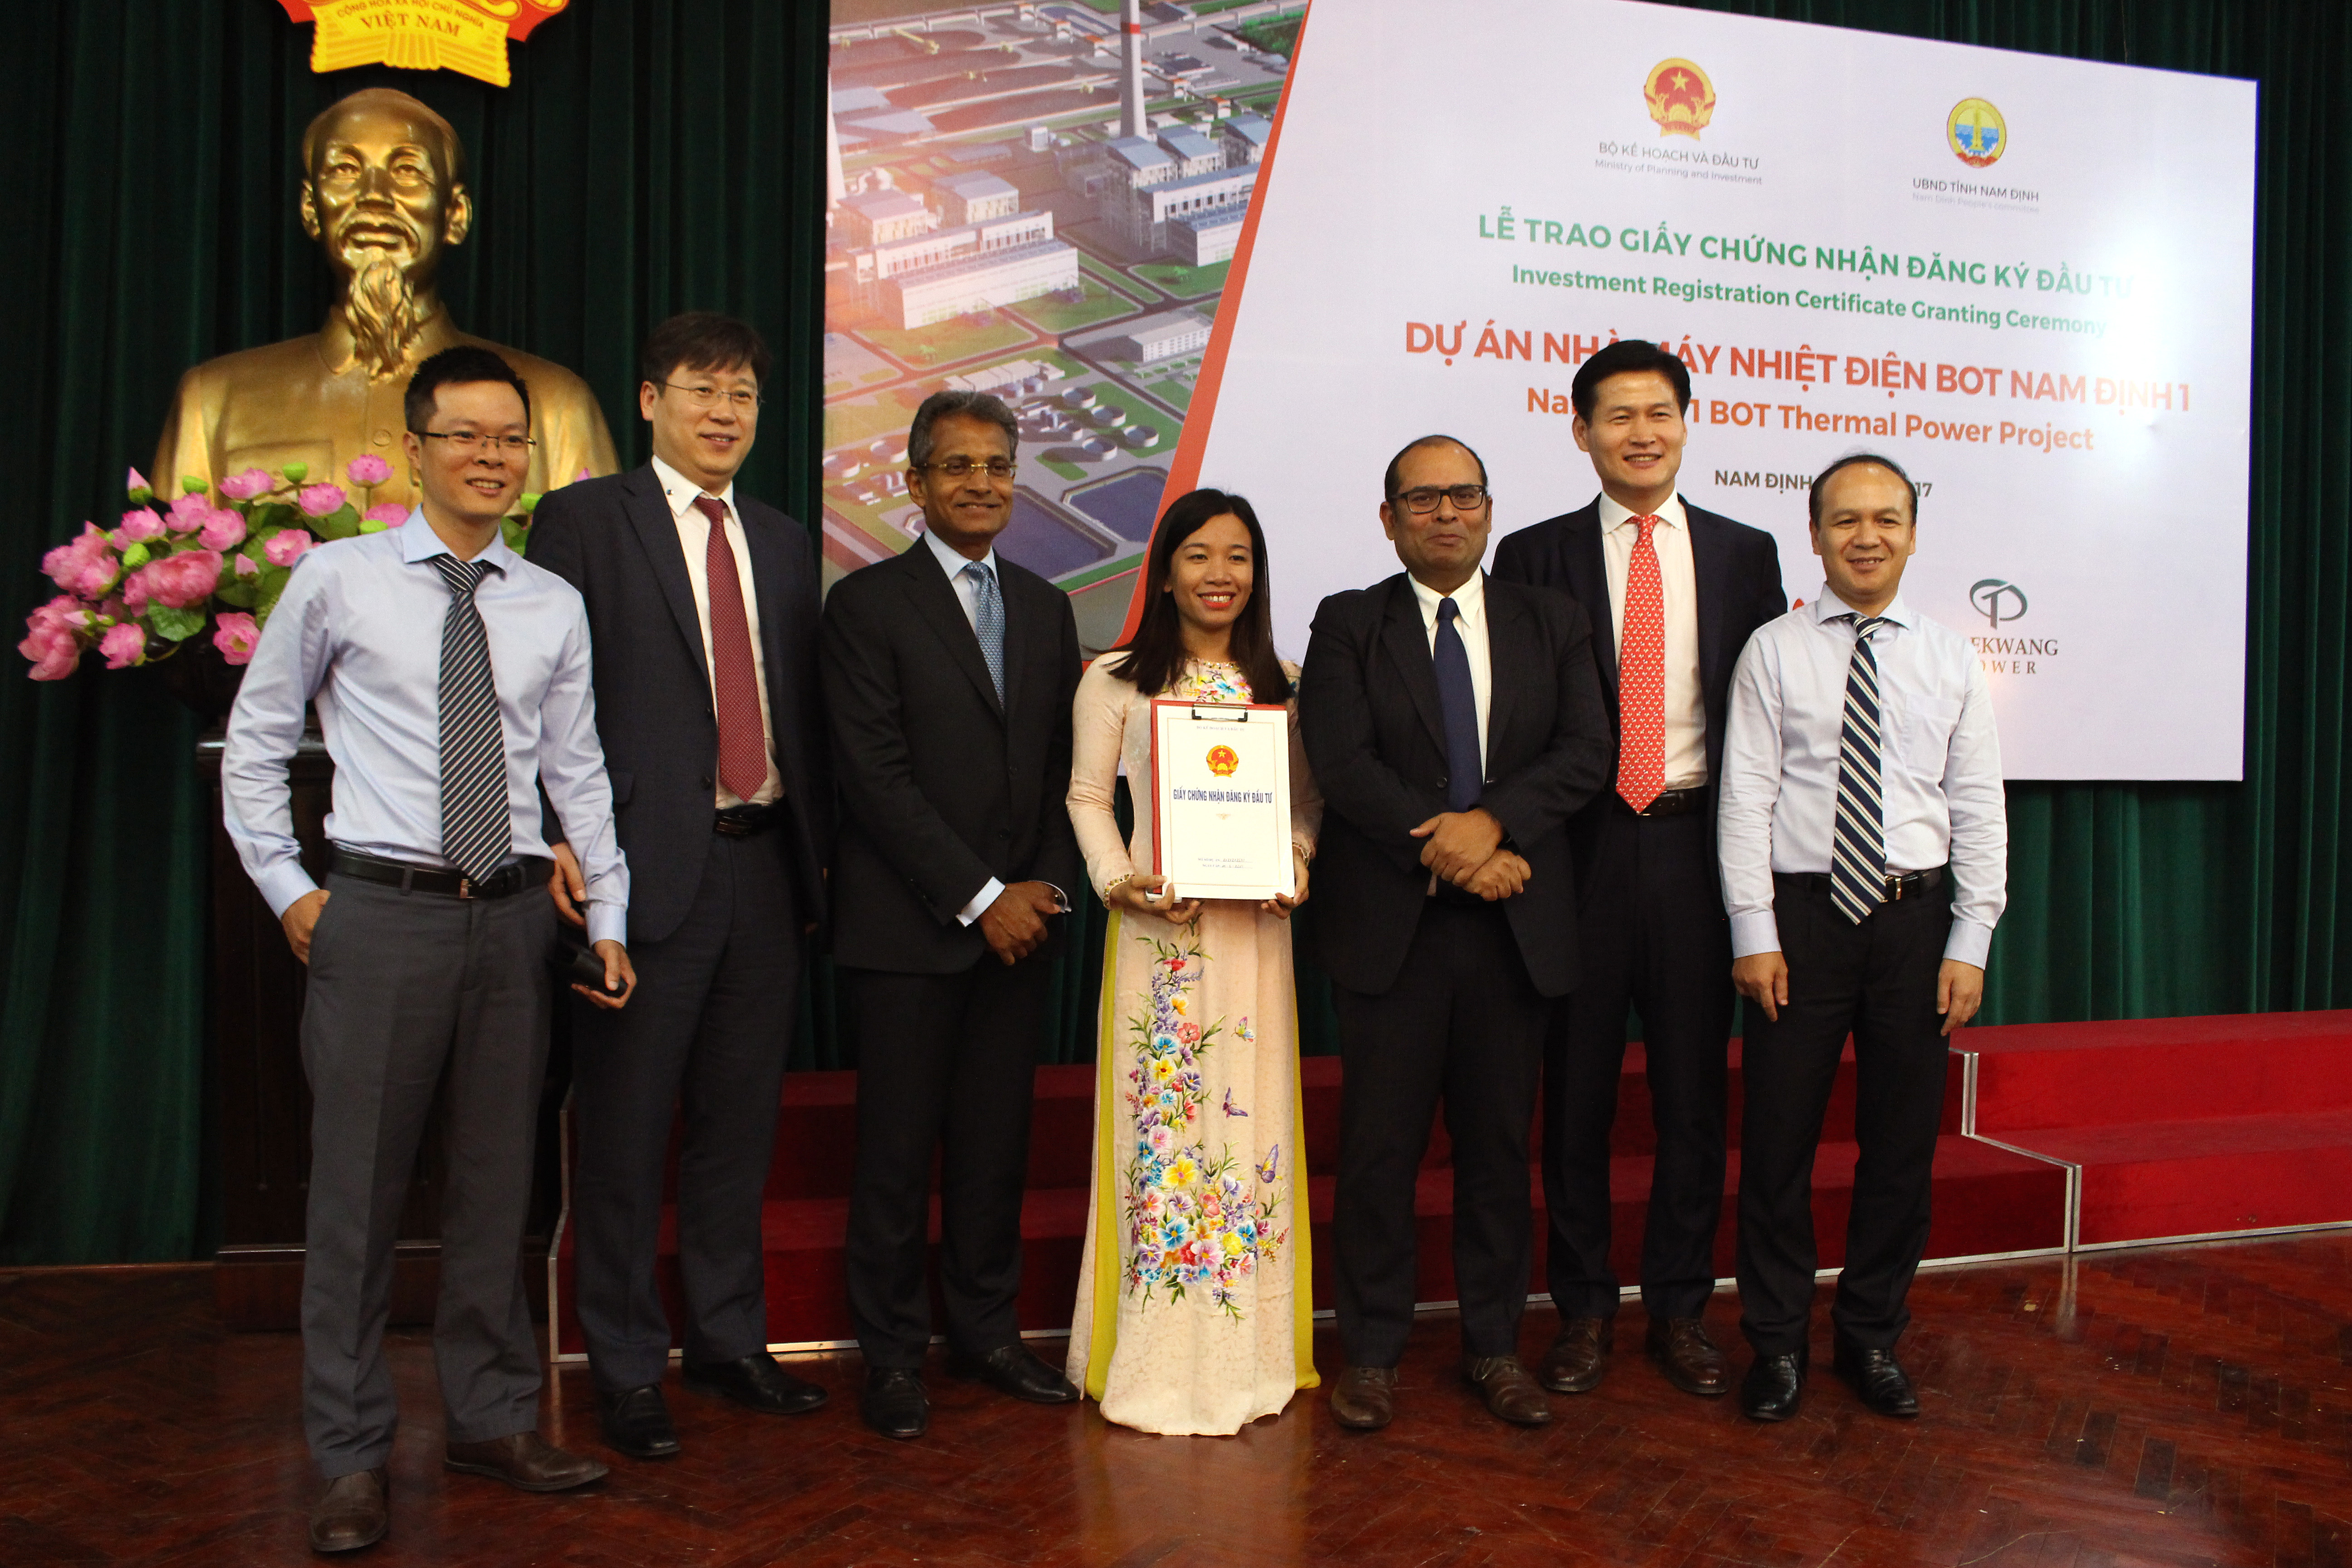 ACWA Power and Taekwang Power Holdings granted Investment Registration Certificate for Nam Dinh 1 Thermal Power Project